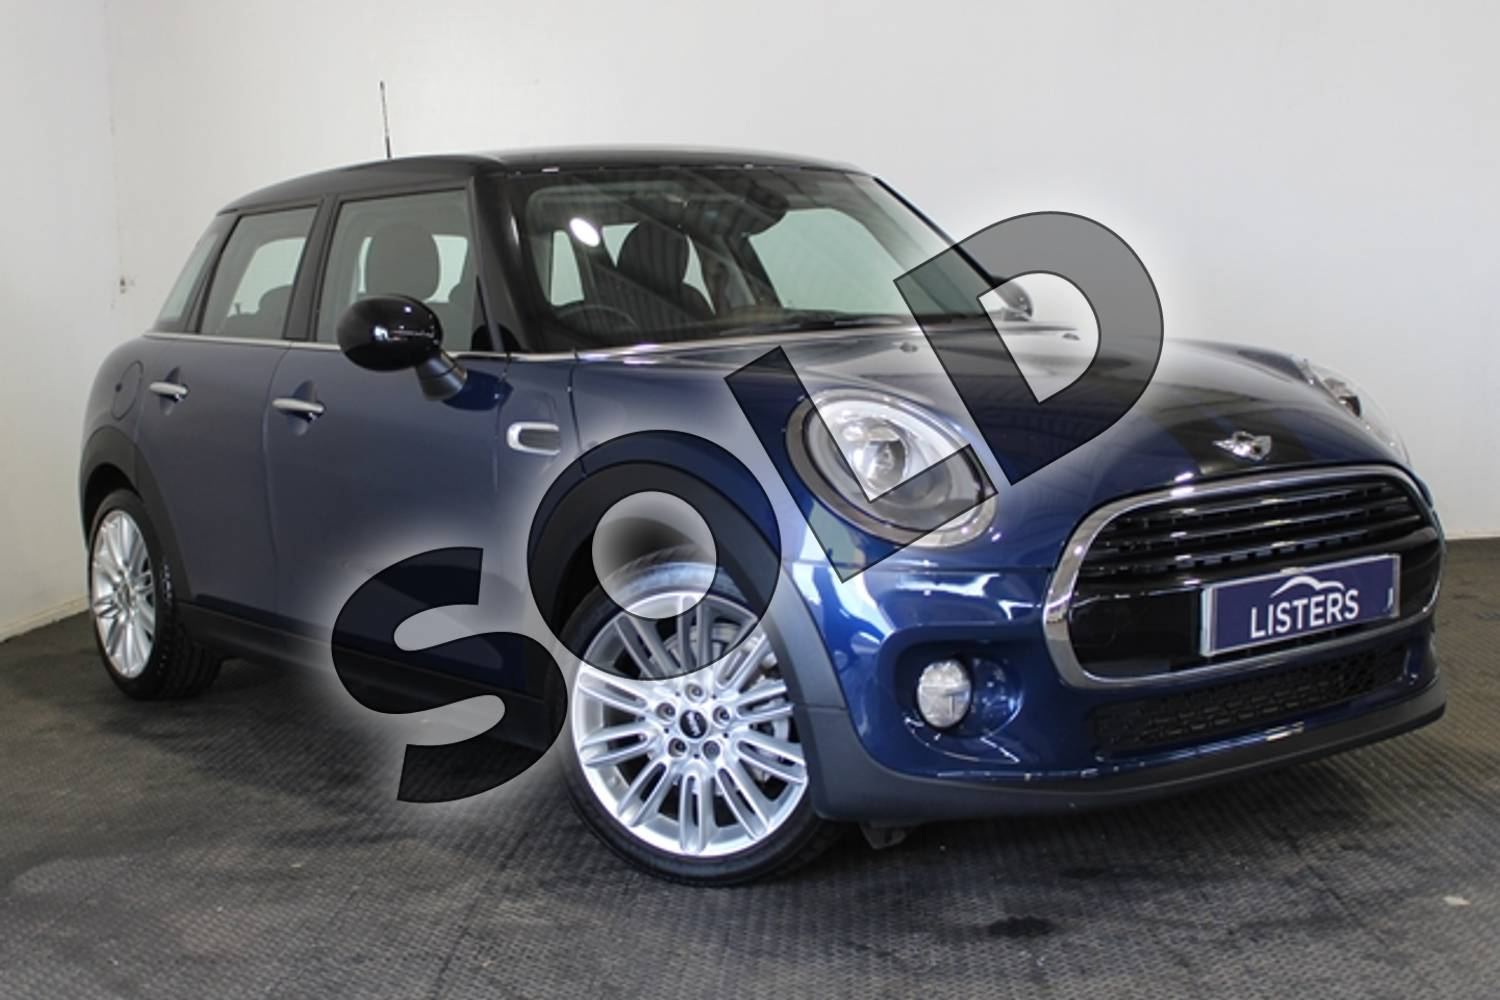 2017 MINI Hatchback 1.5 Cooper 5dr Auto in Metallic - Deep blue at Listers U Stratford-upon-Avon